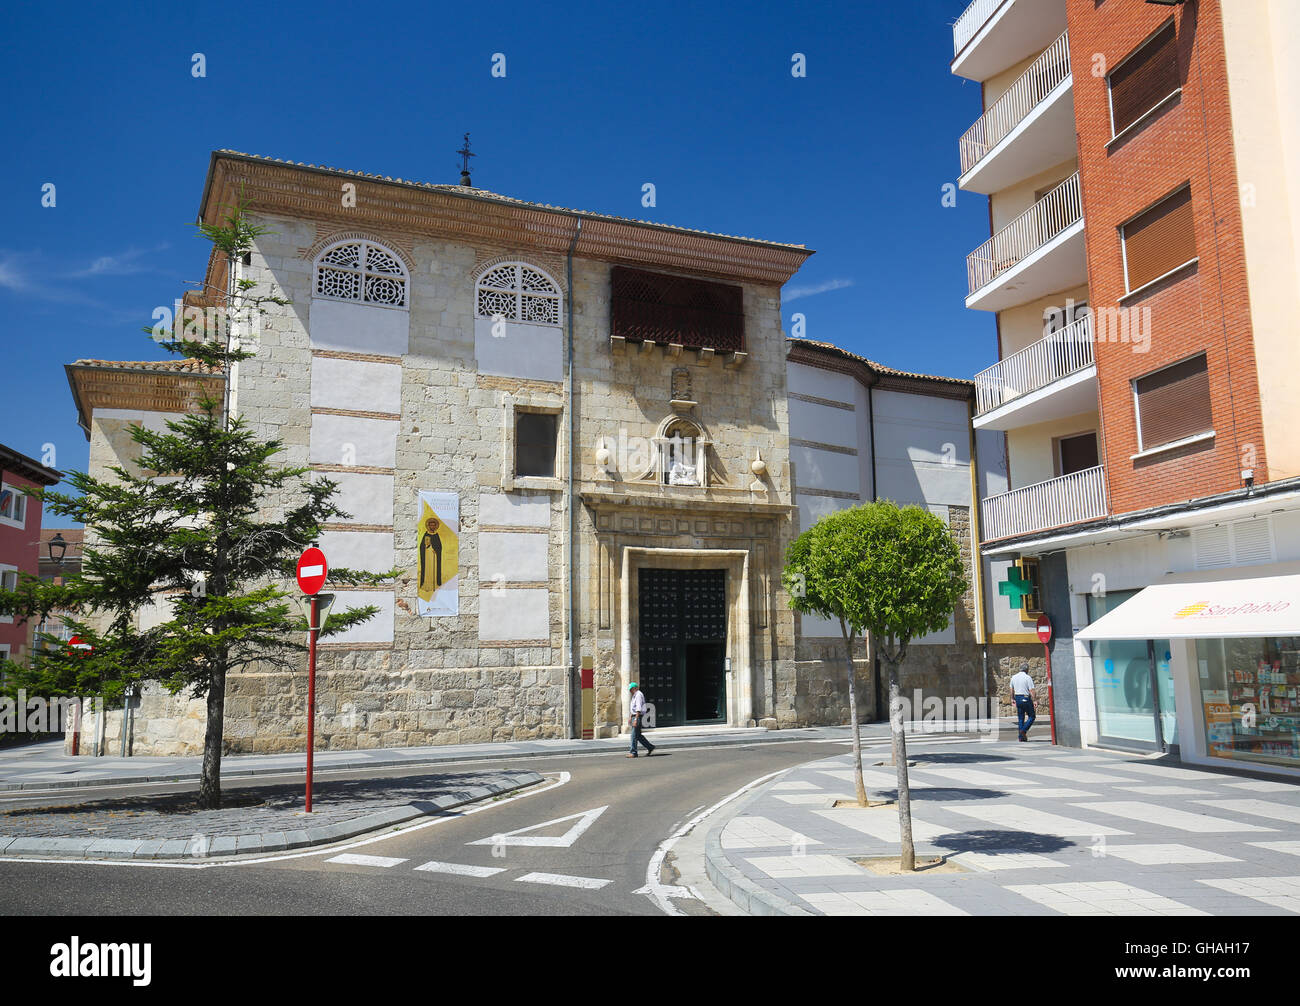 PALENCIA, SPAIN - JULY 10, 2016: Church in Palencia, a city in Castile and Leon, northwest Spain - Stock Image